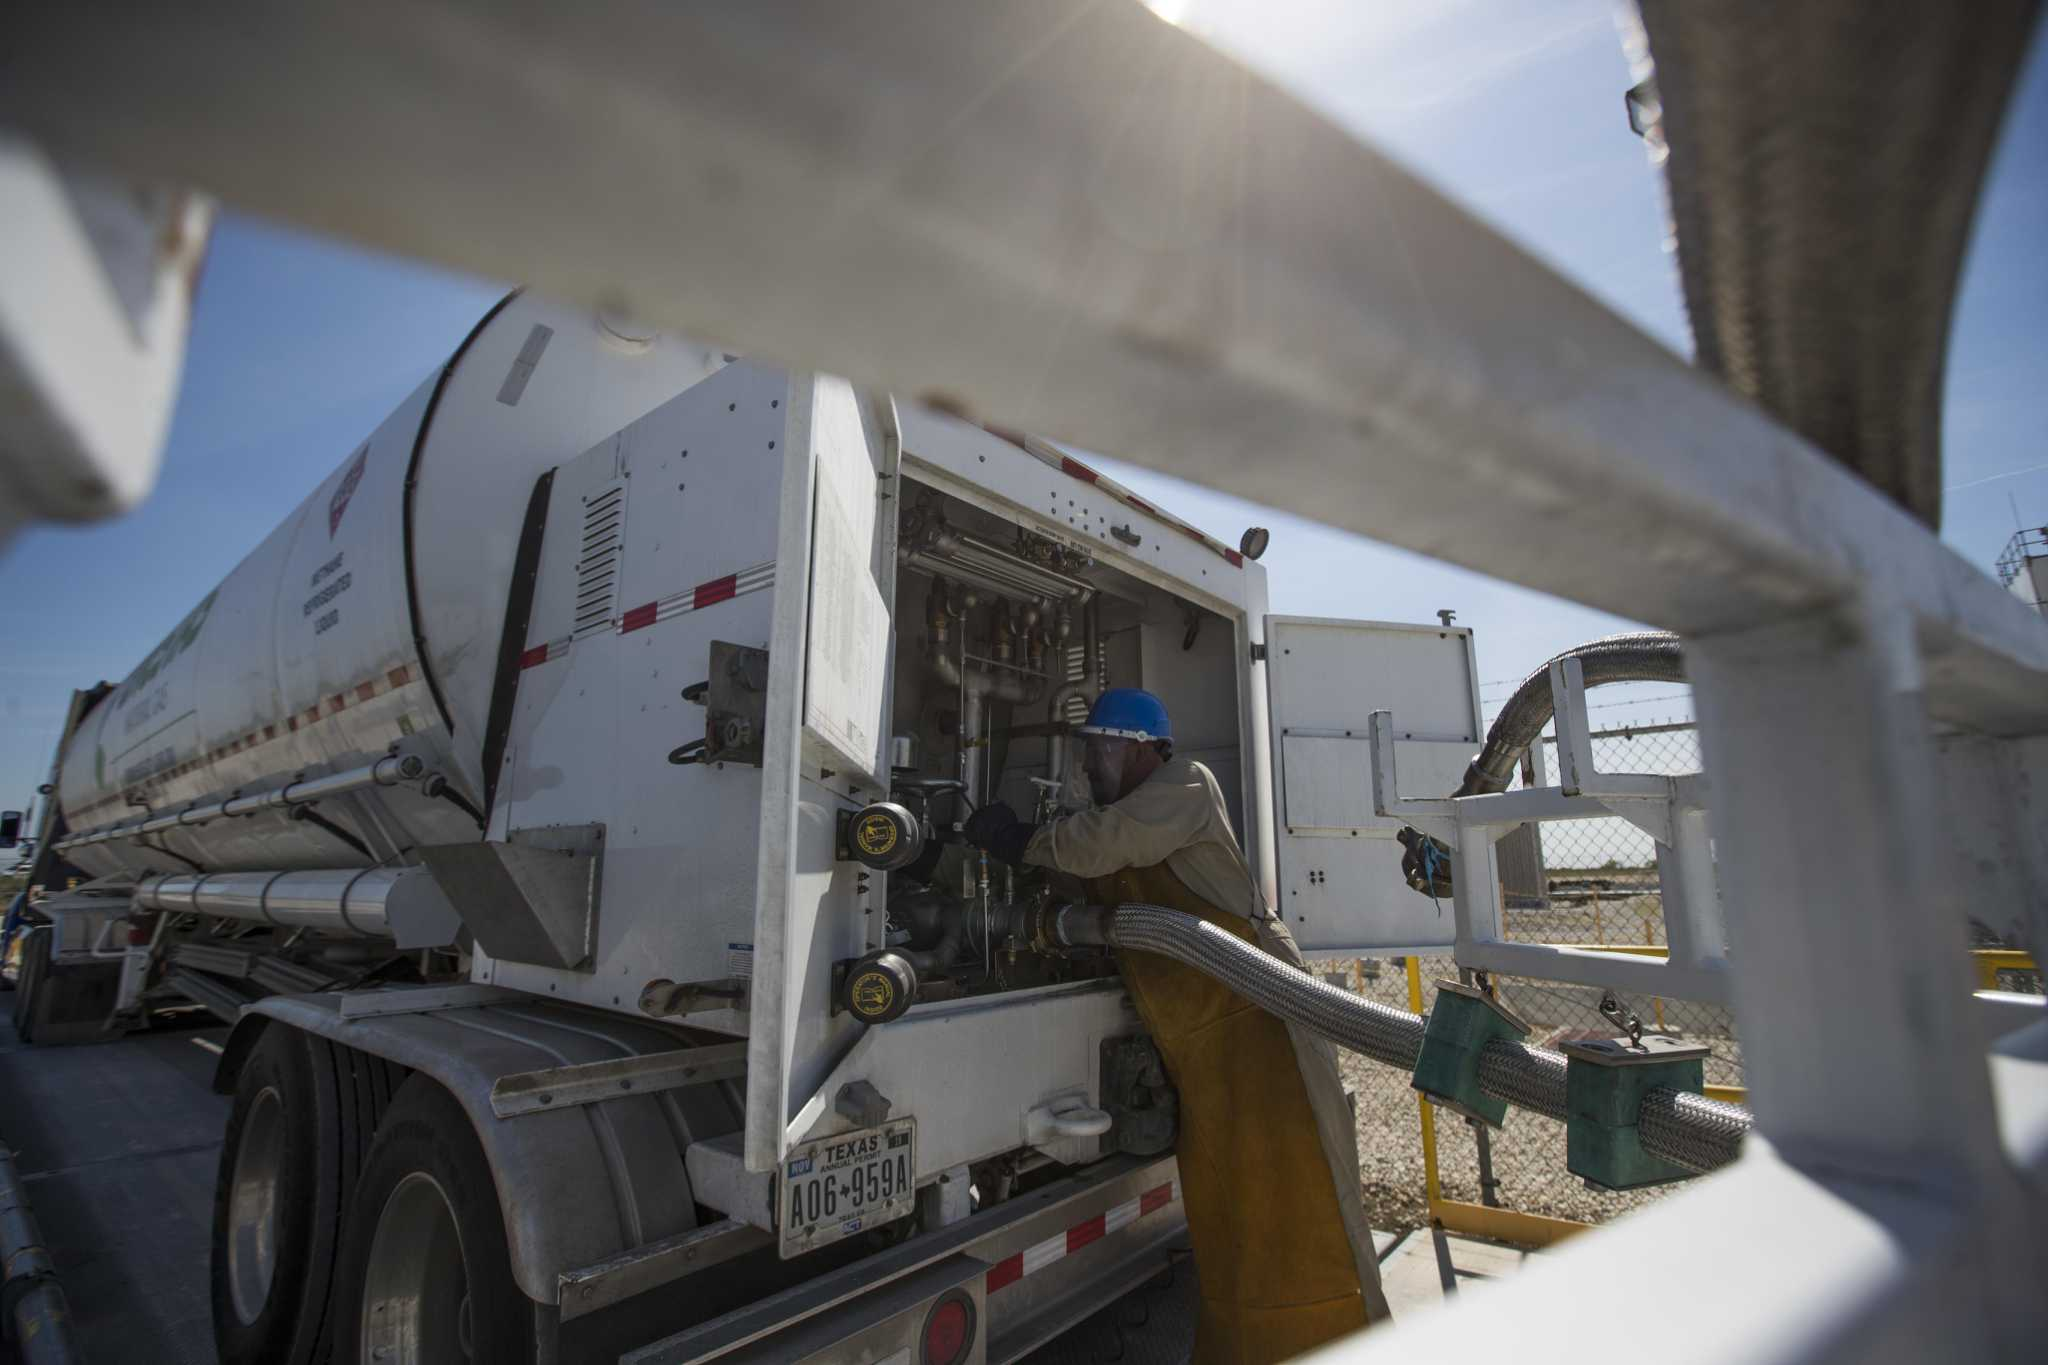 Stabilis Energy eyes Monterrey for location of first LNG plant in Mexico